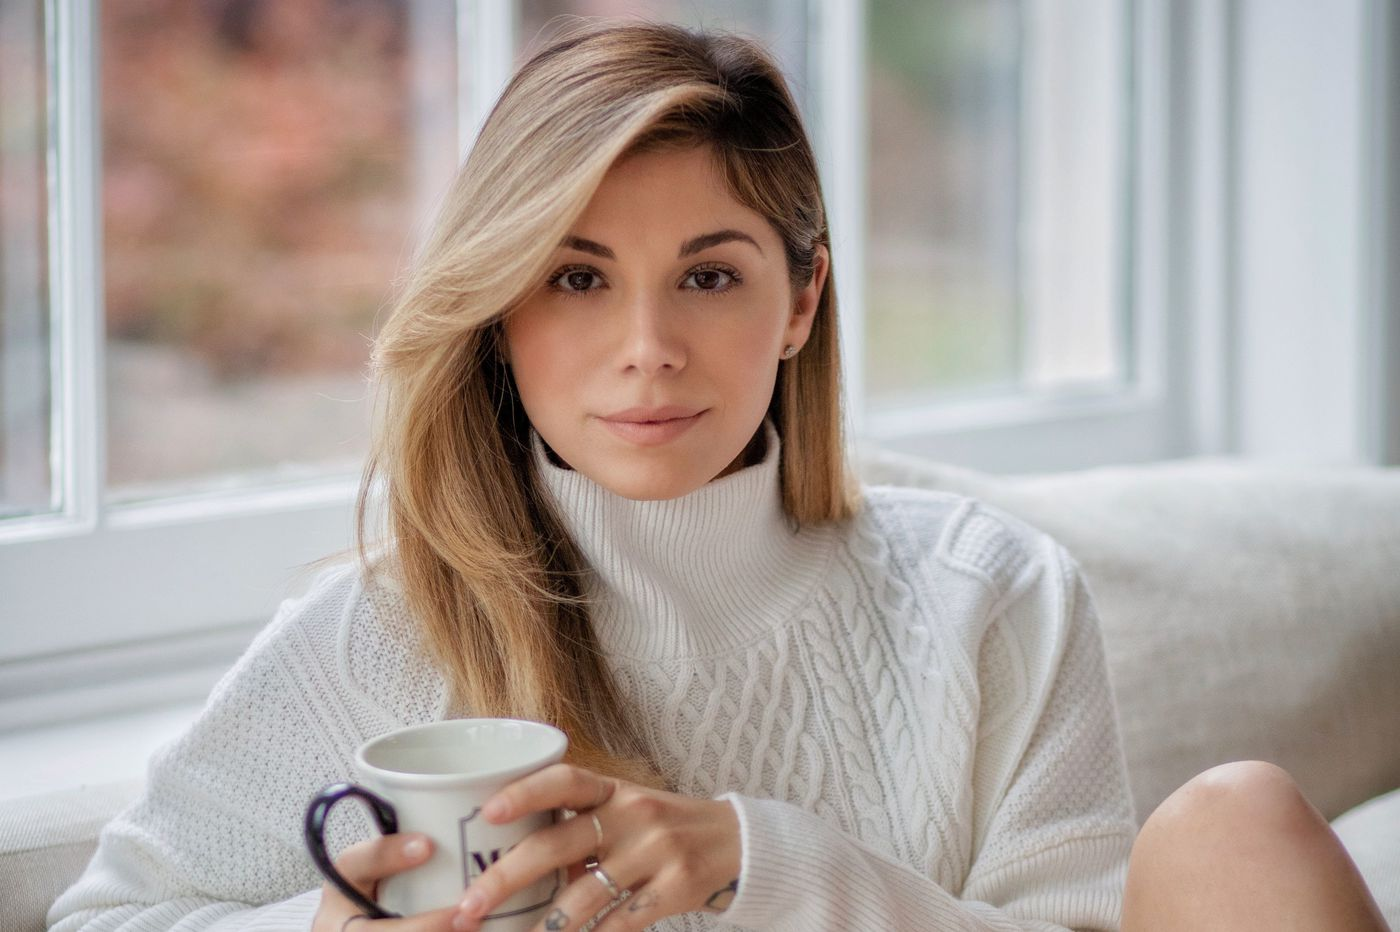 Christina Perri's new album is a departure from her previous hits: It's lullabies for her daughter